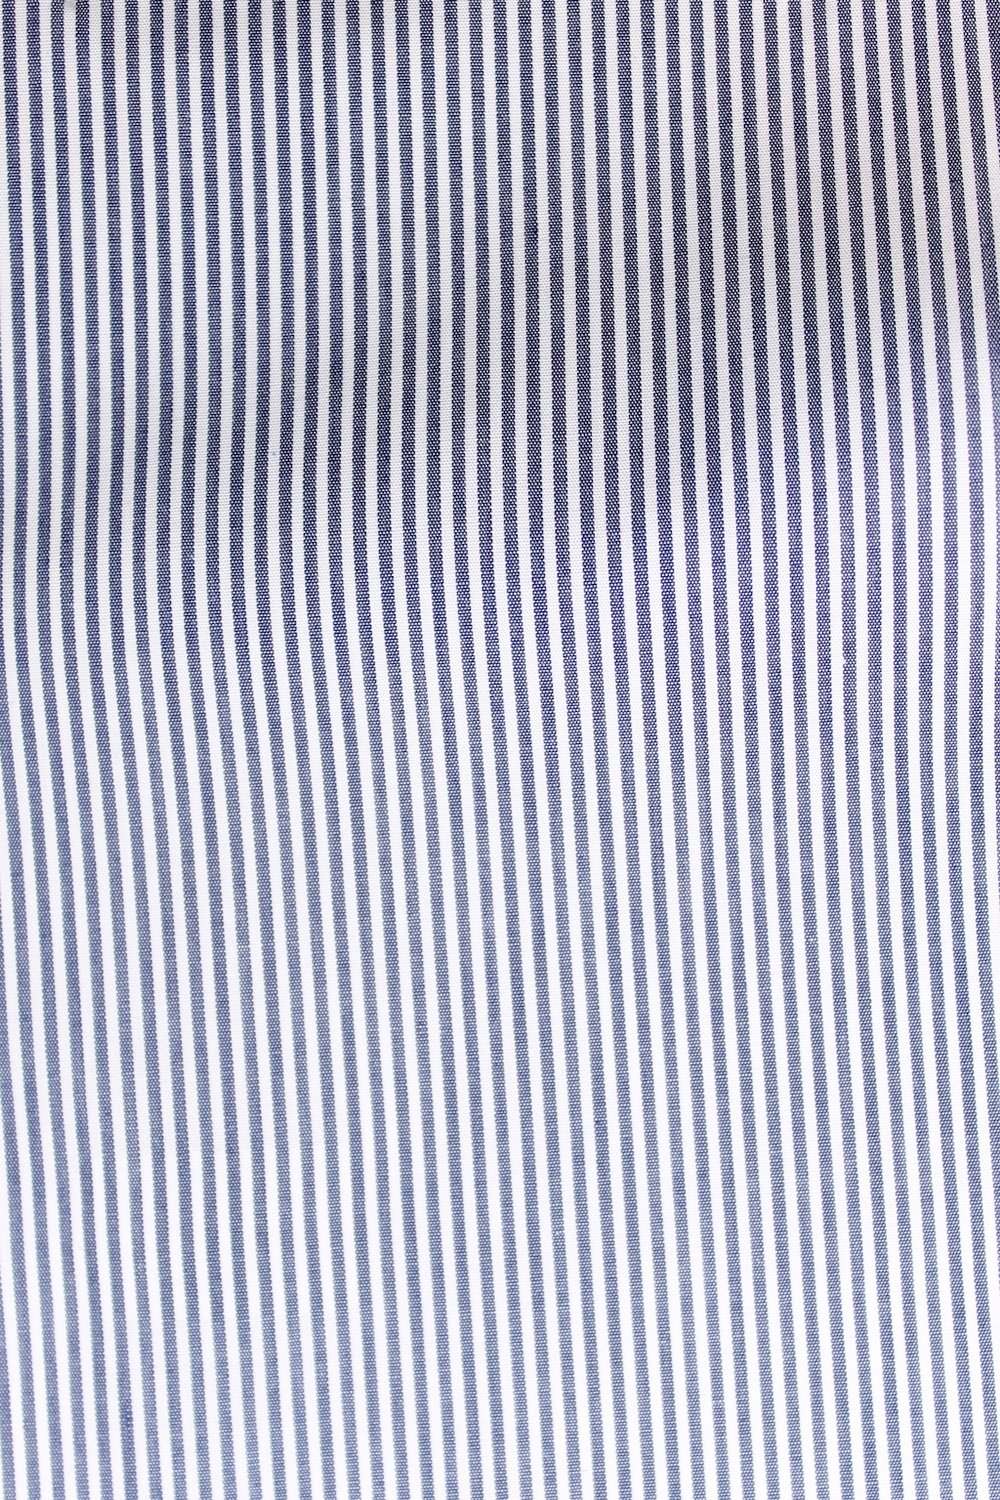 6551 Navy Sail Stripe.JPG